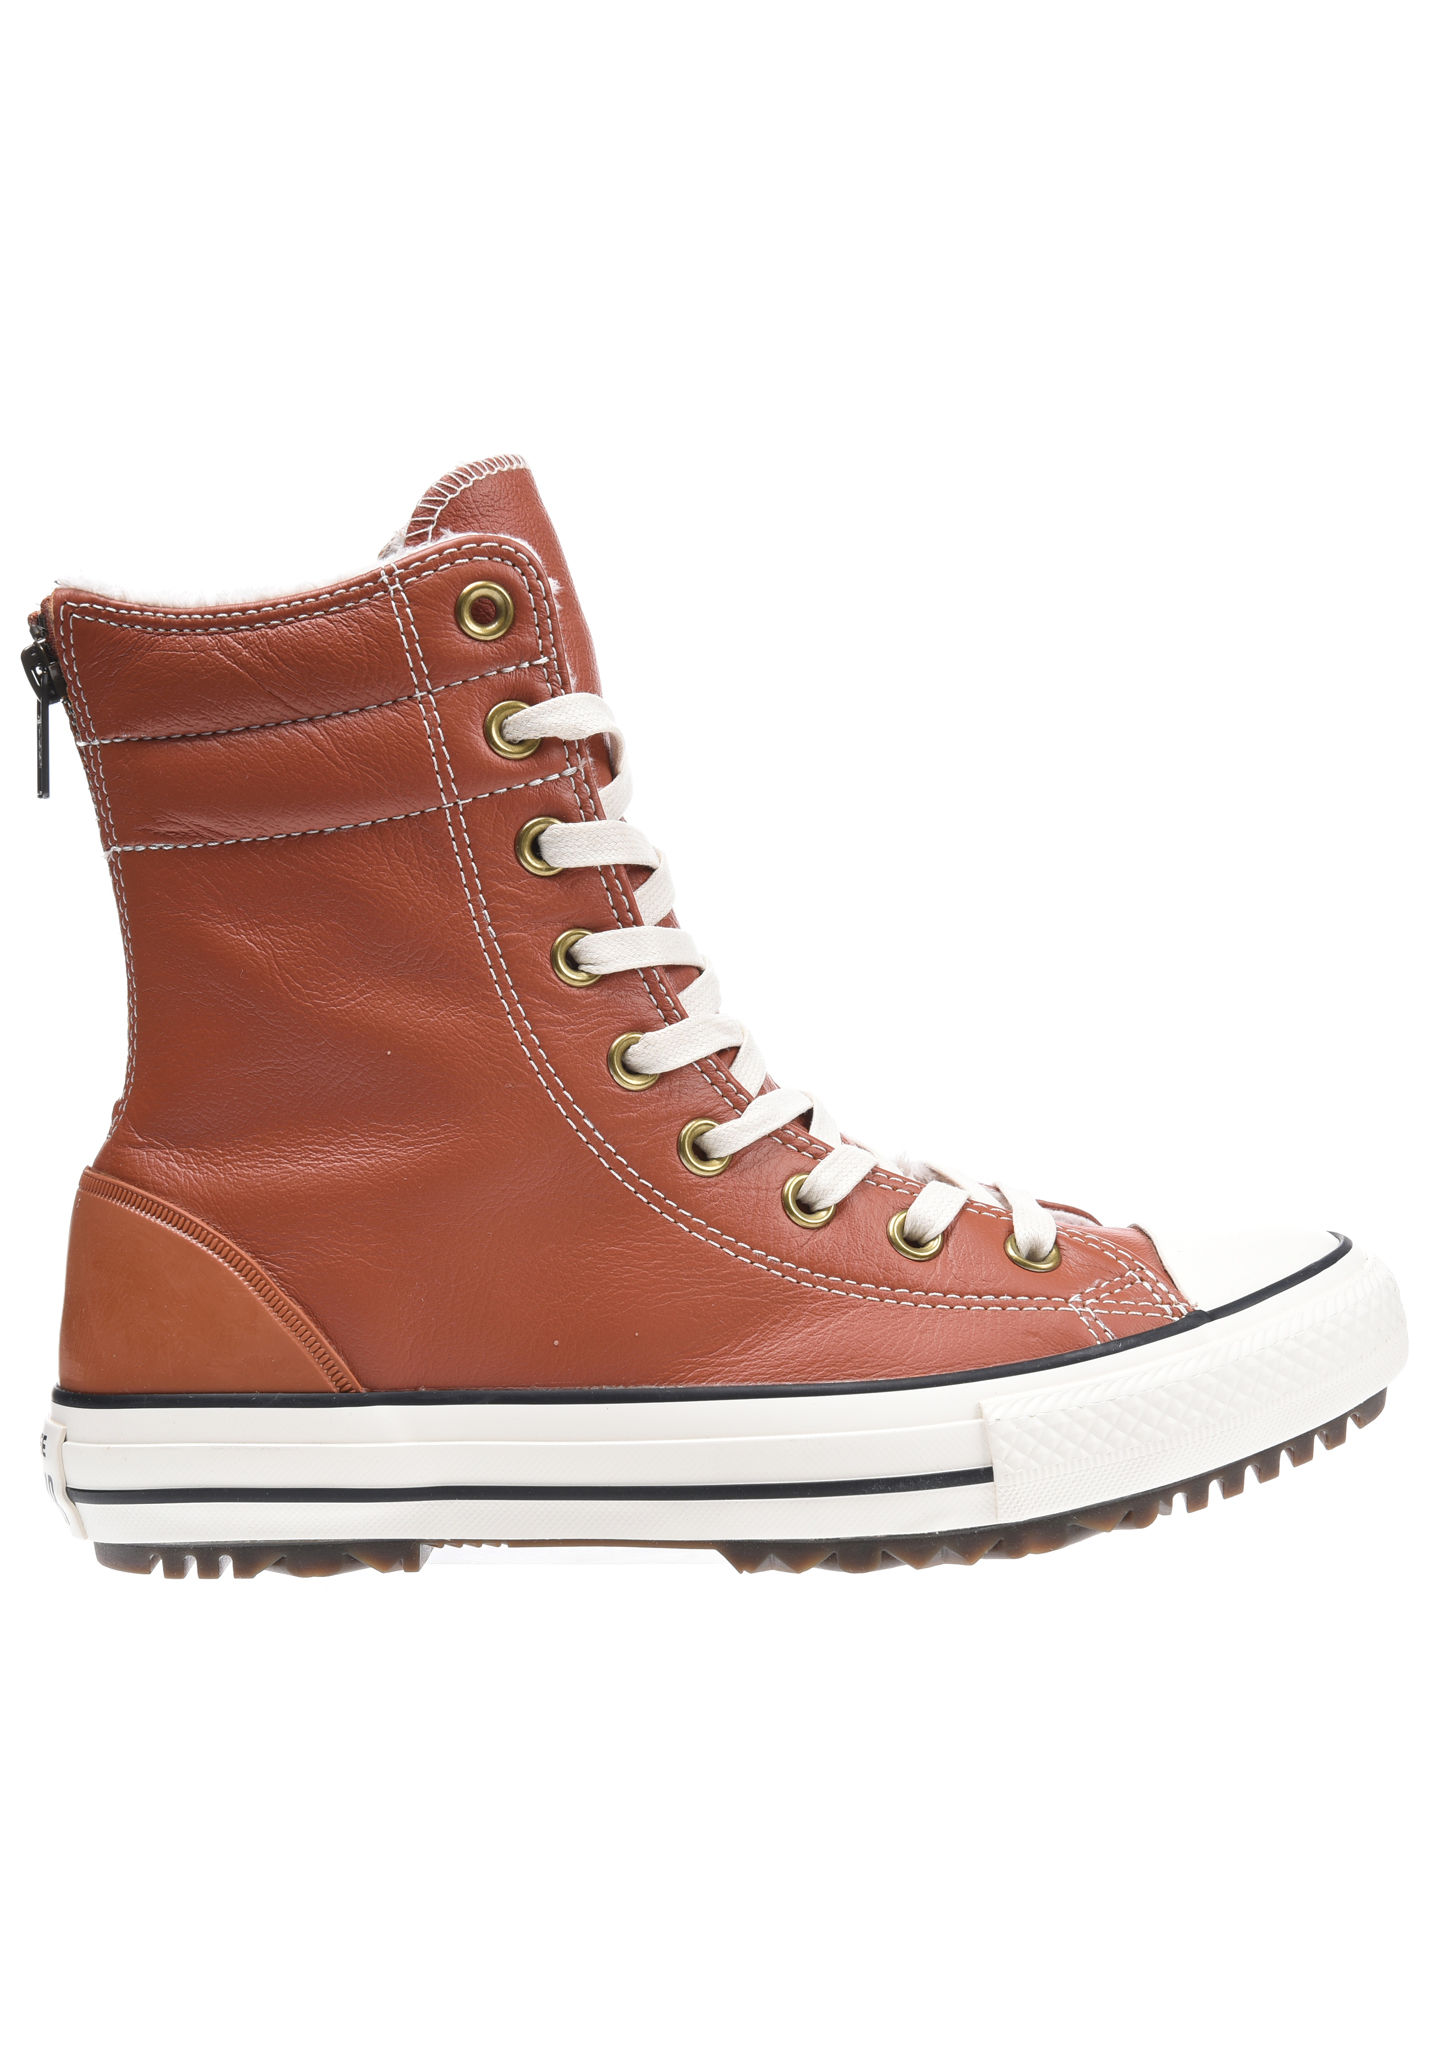 7eef3cd7042d94 Converse Chuck Taylor All Star Hi-Rise Lthr - Boots for Women - Brown -  Planet Sports